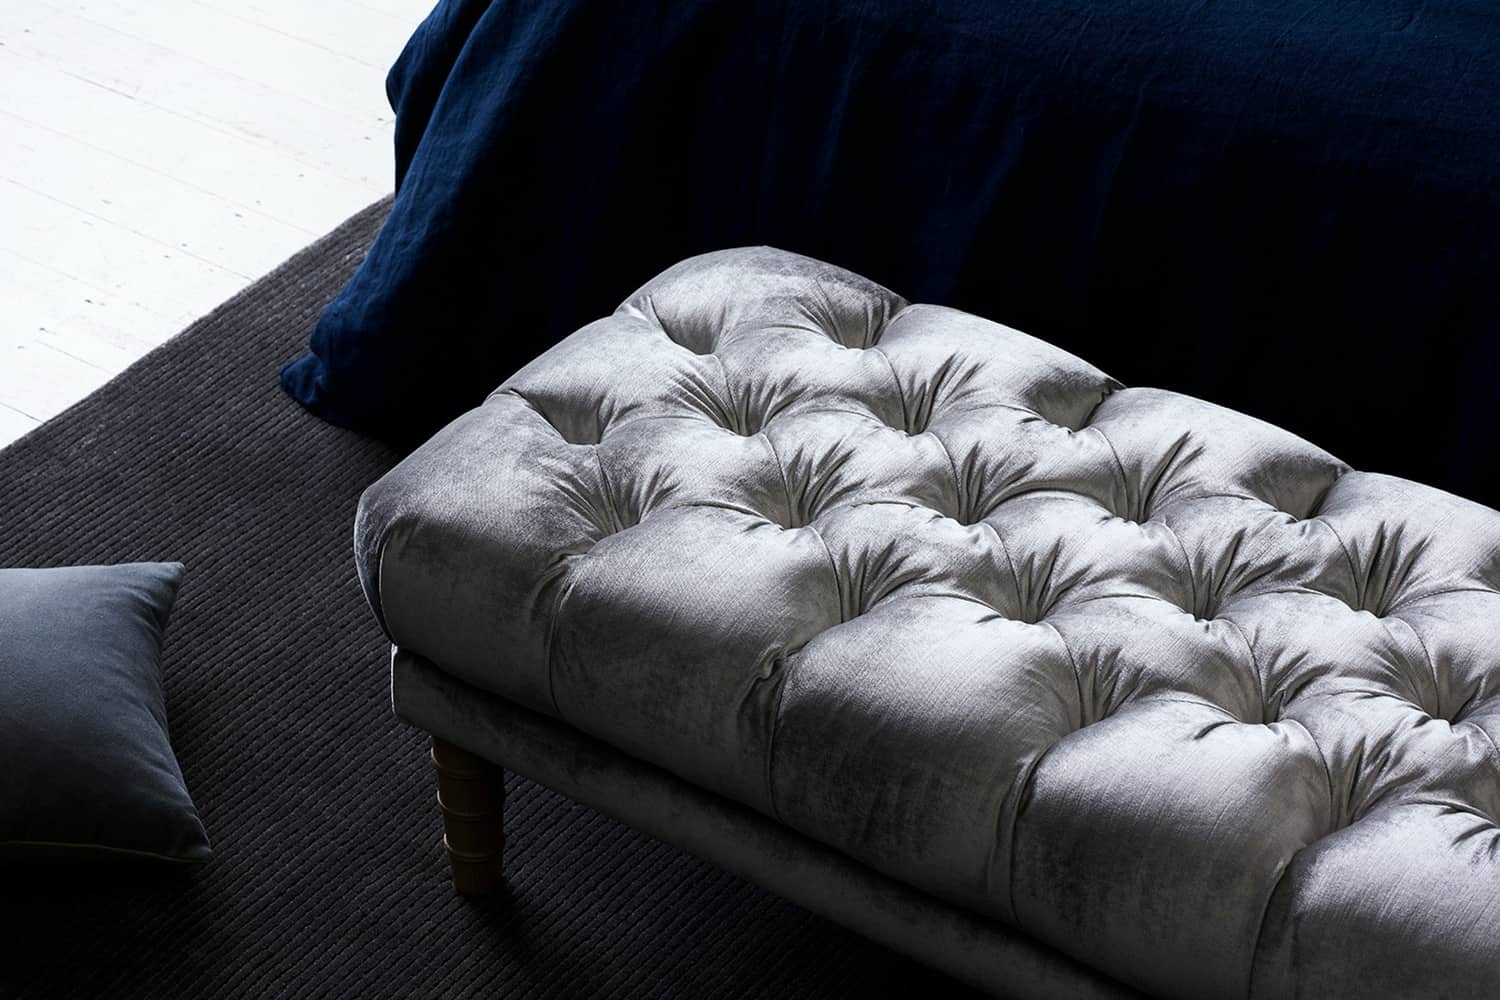 Marco footstool, bedroom furniture